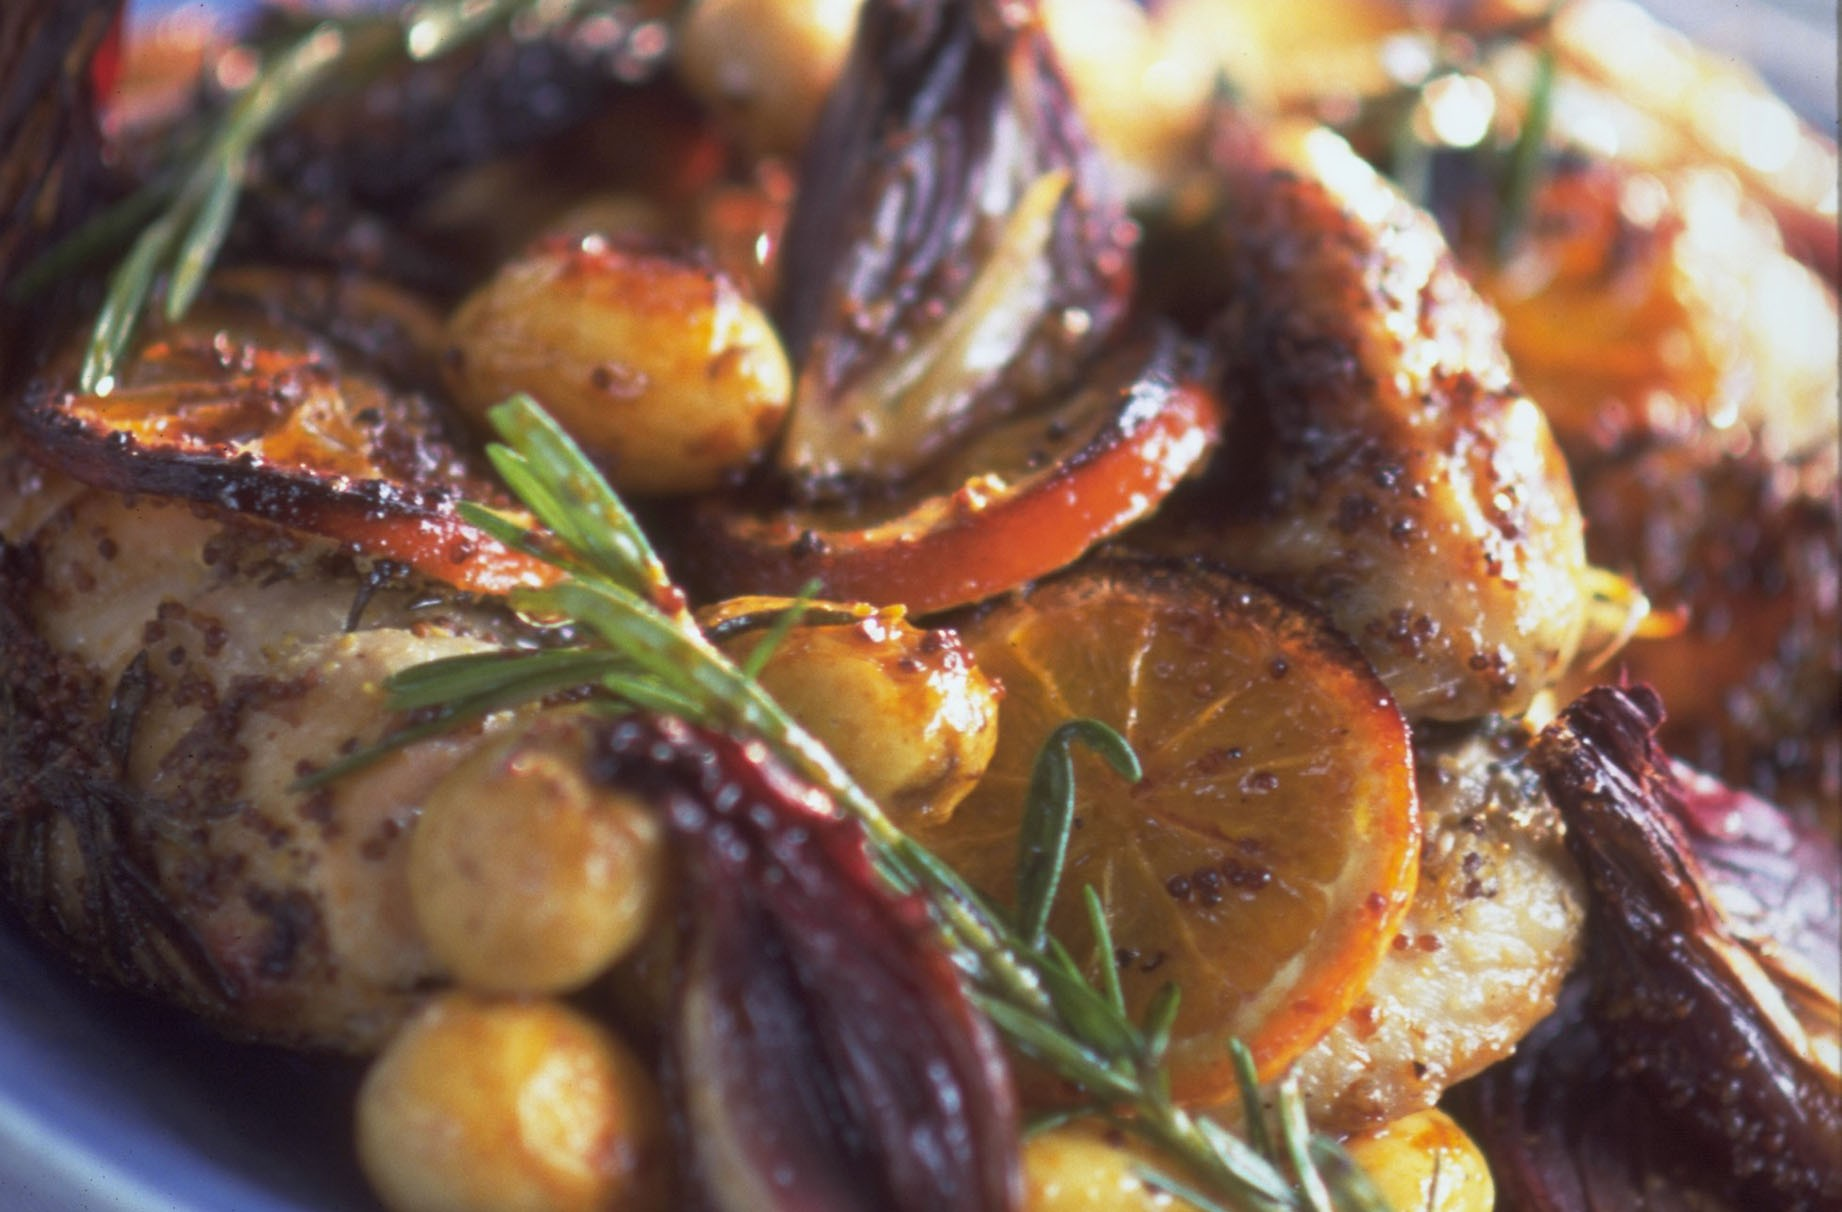 Baked chicken recipe with potatoes and onion